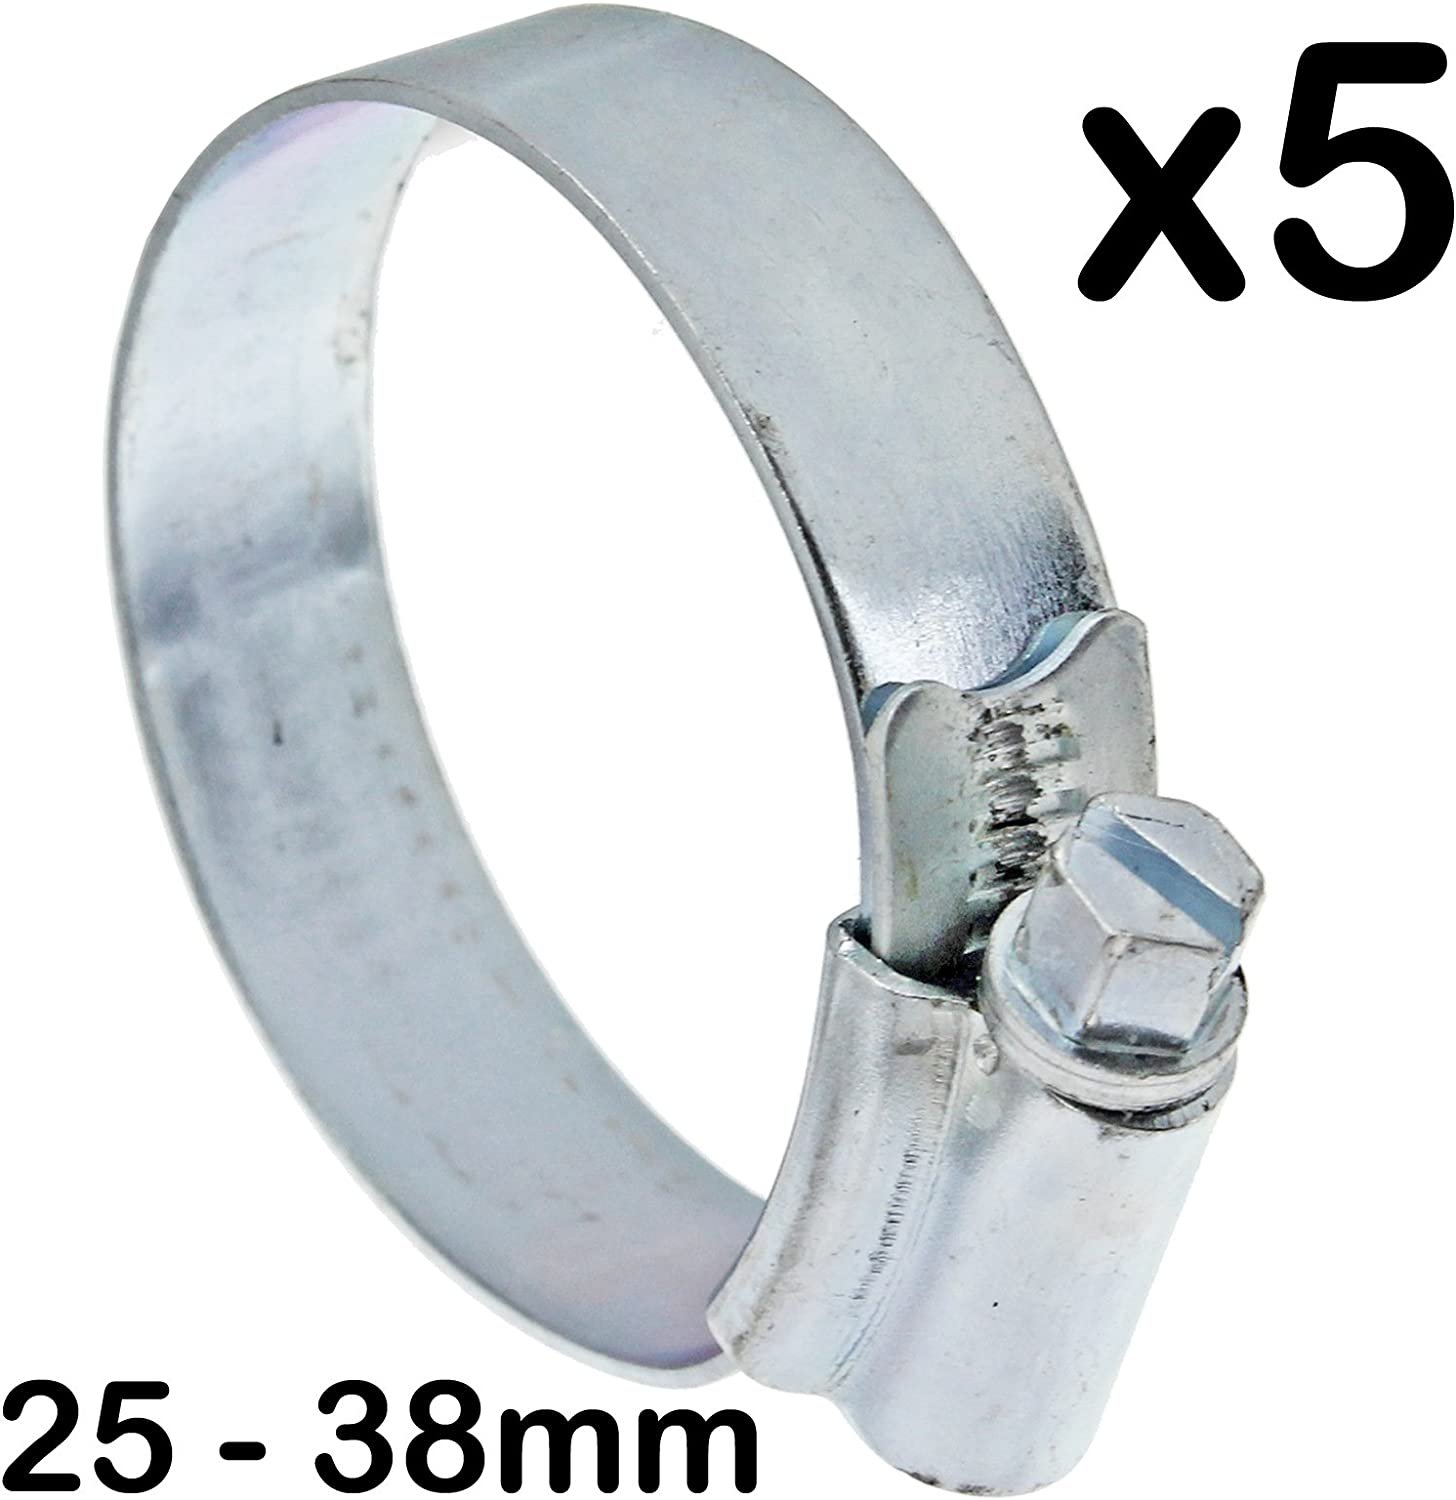 SPARES2GO Worm Drive Jubilee Steel Pipe Clip Clamp Small Medium 32-44mm